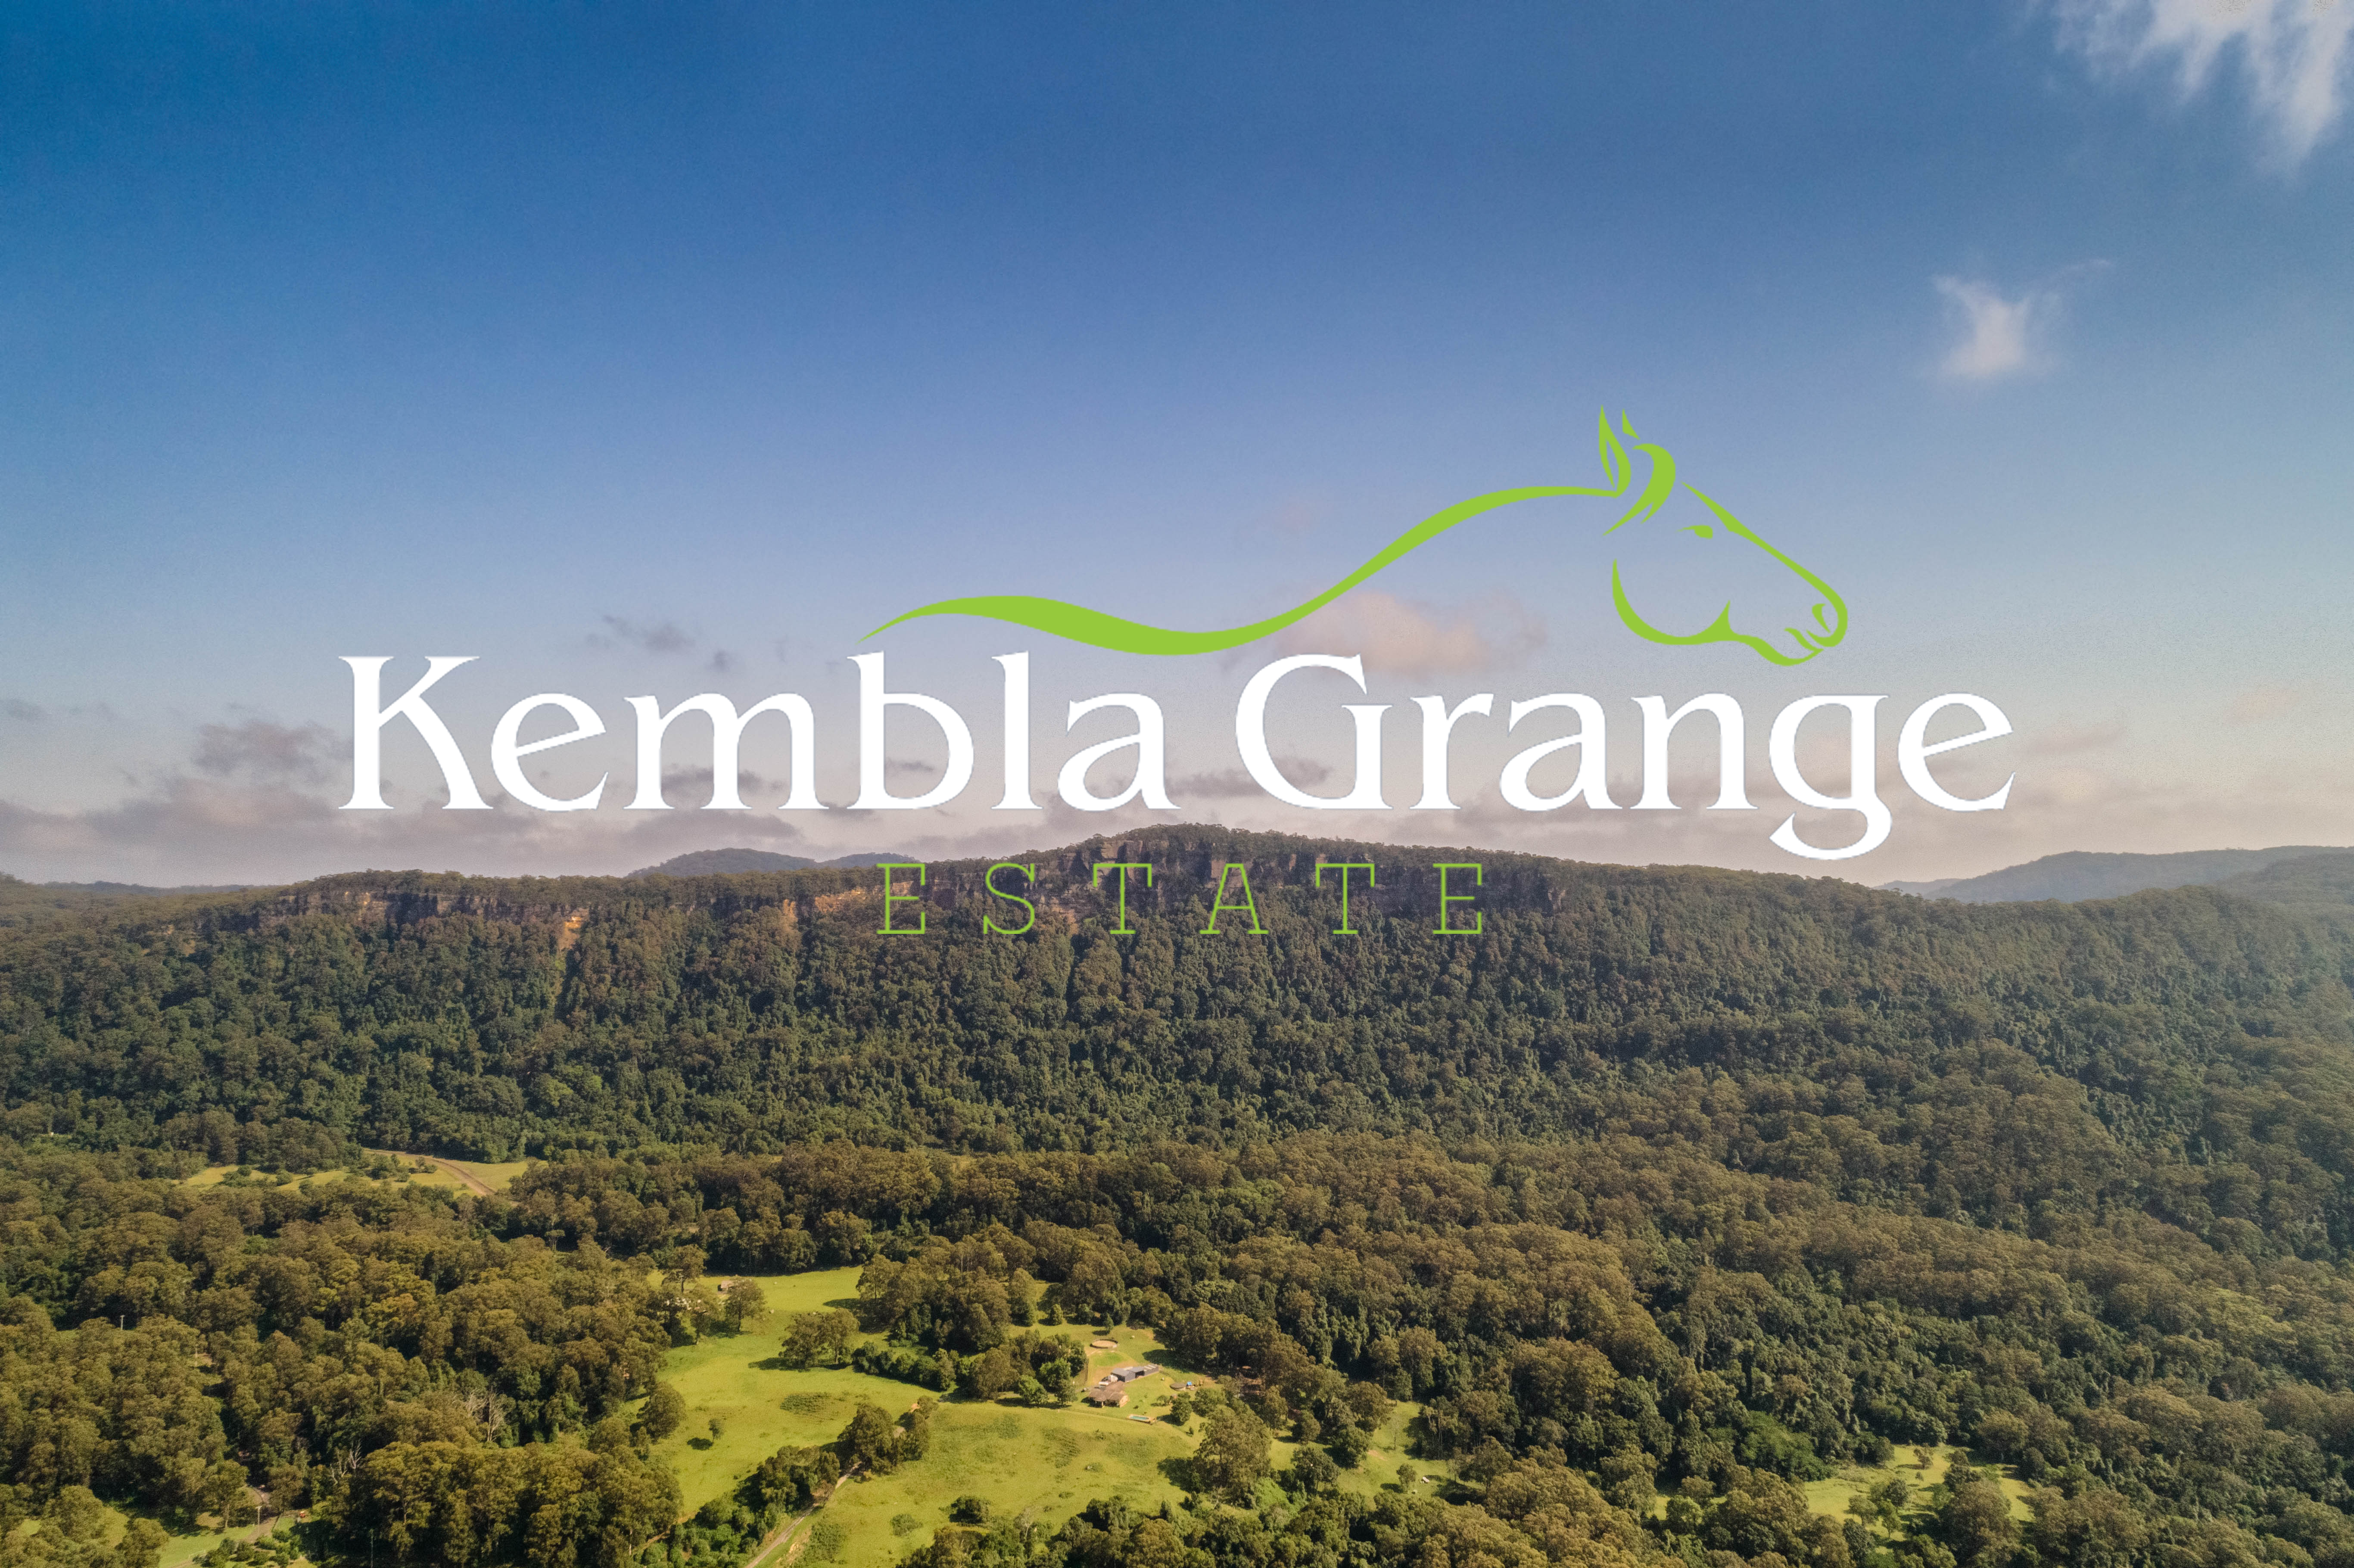 Brand New Kembla Grange Land Estate | New Release